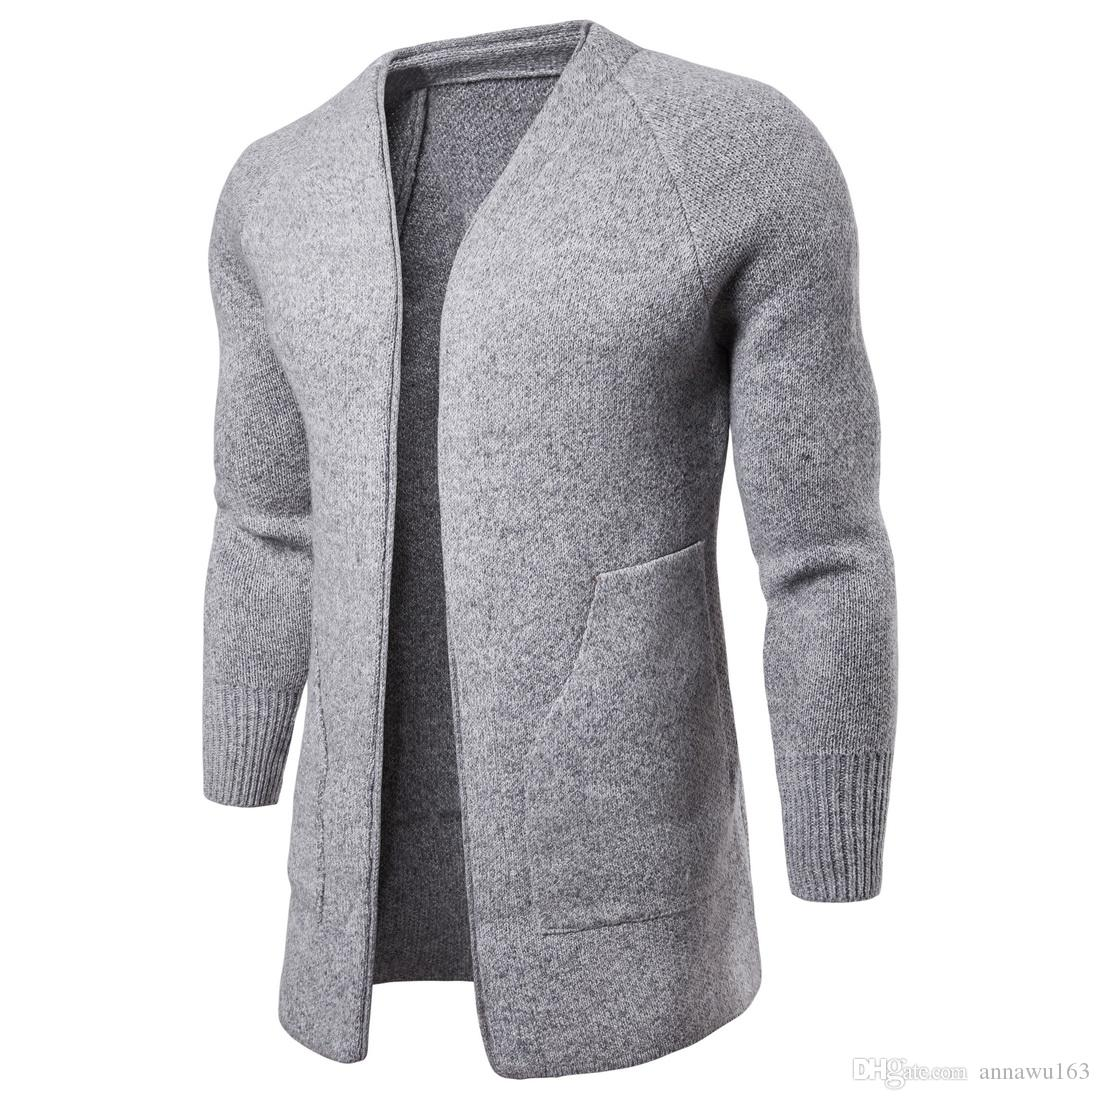 New Designer Cardigan Sweater Men' V-neck Long Sweater With Long Sleeve Cotton Blend Knitted Winter Mens Knitted Coats For Sales